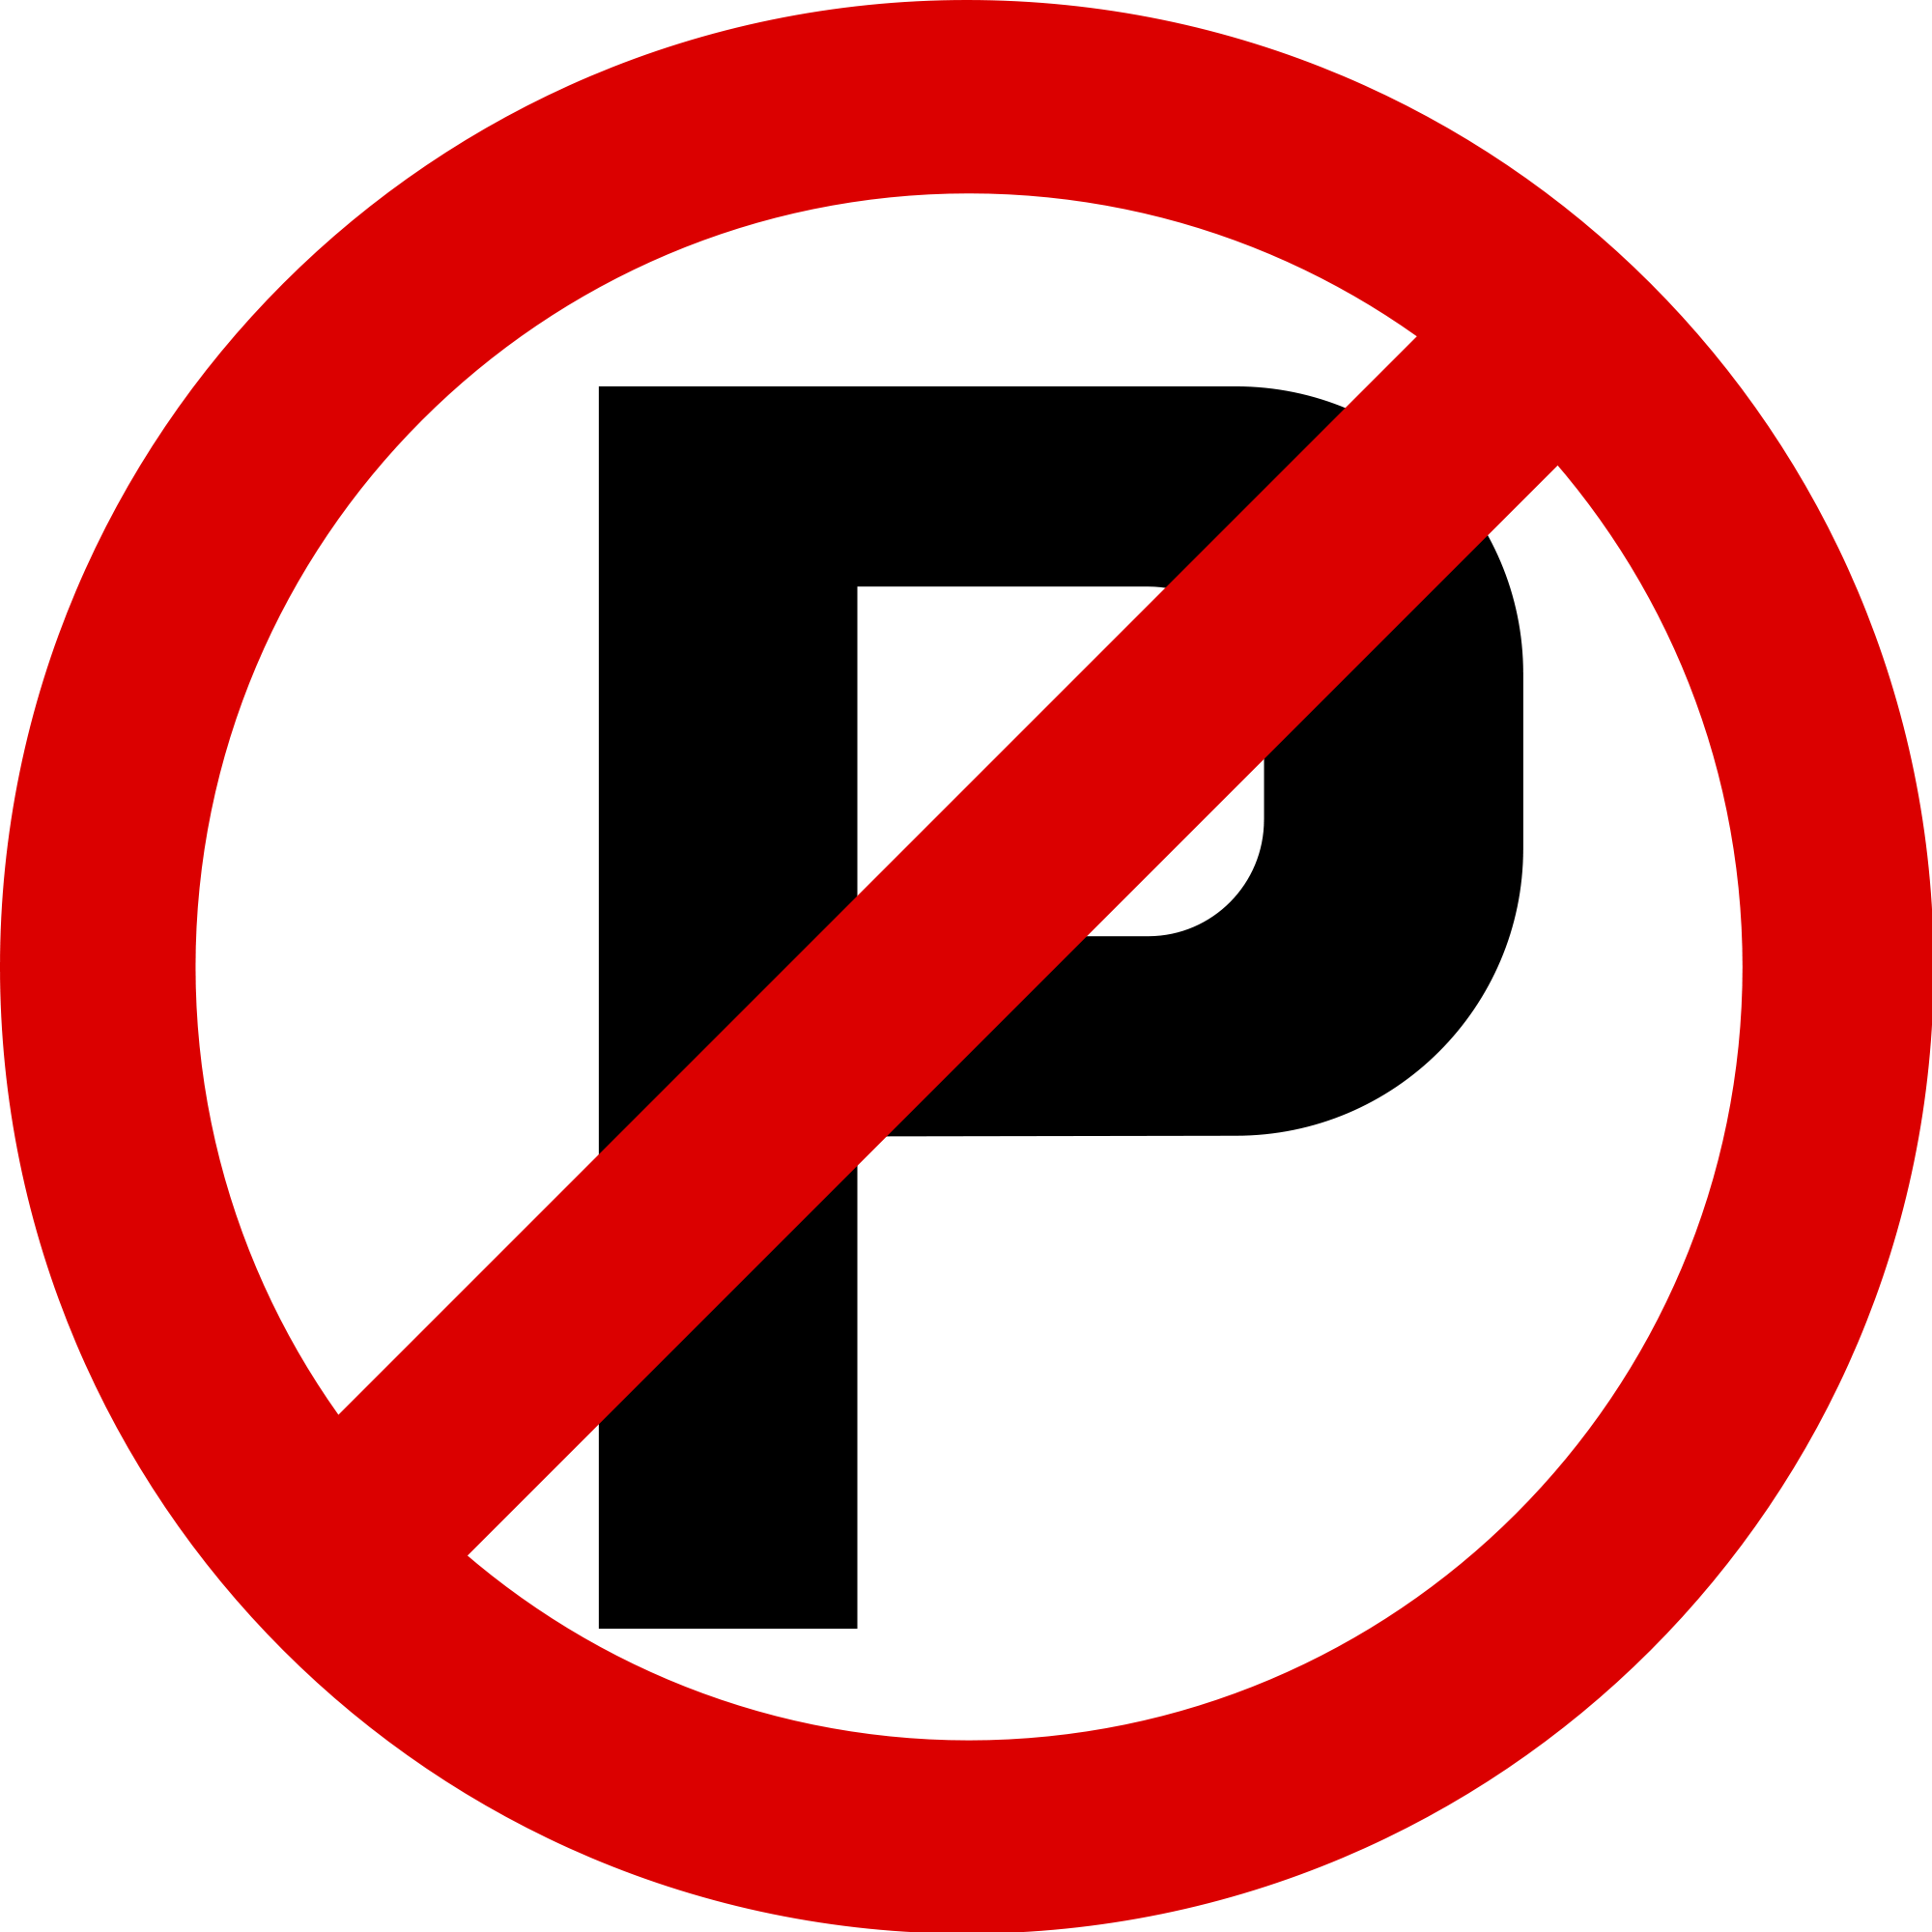 File:Singapore Road Signs - Restrictive Sign - No Parking.svg ...